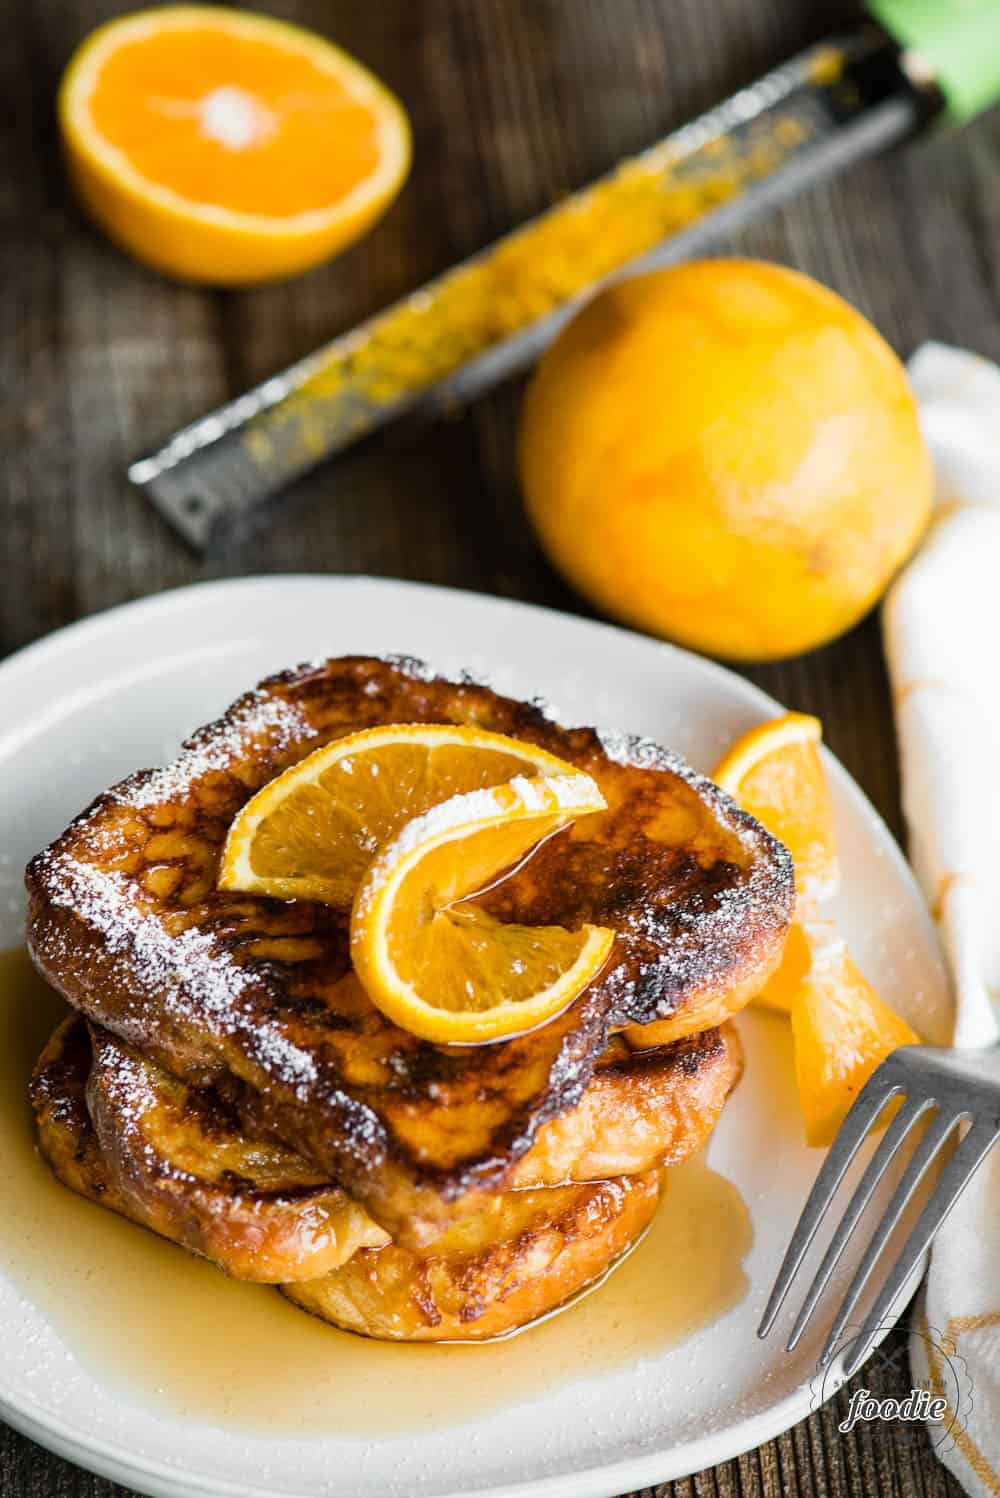 Grand Marnier French Toast with orange zest